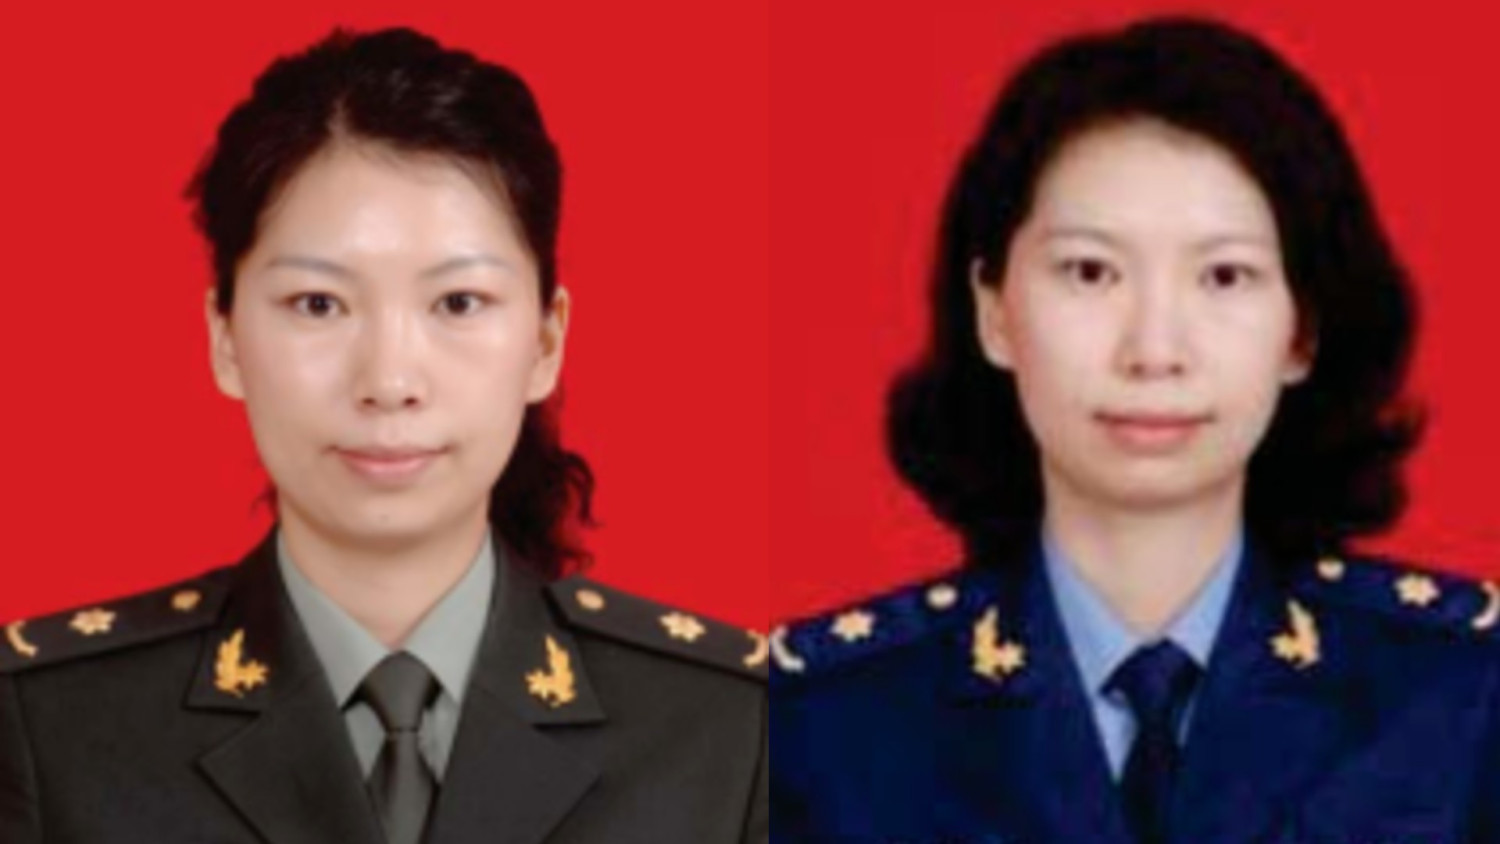 china threatens to take us citizens hostage if charges against alleged spies not dropped